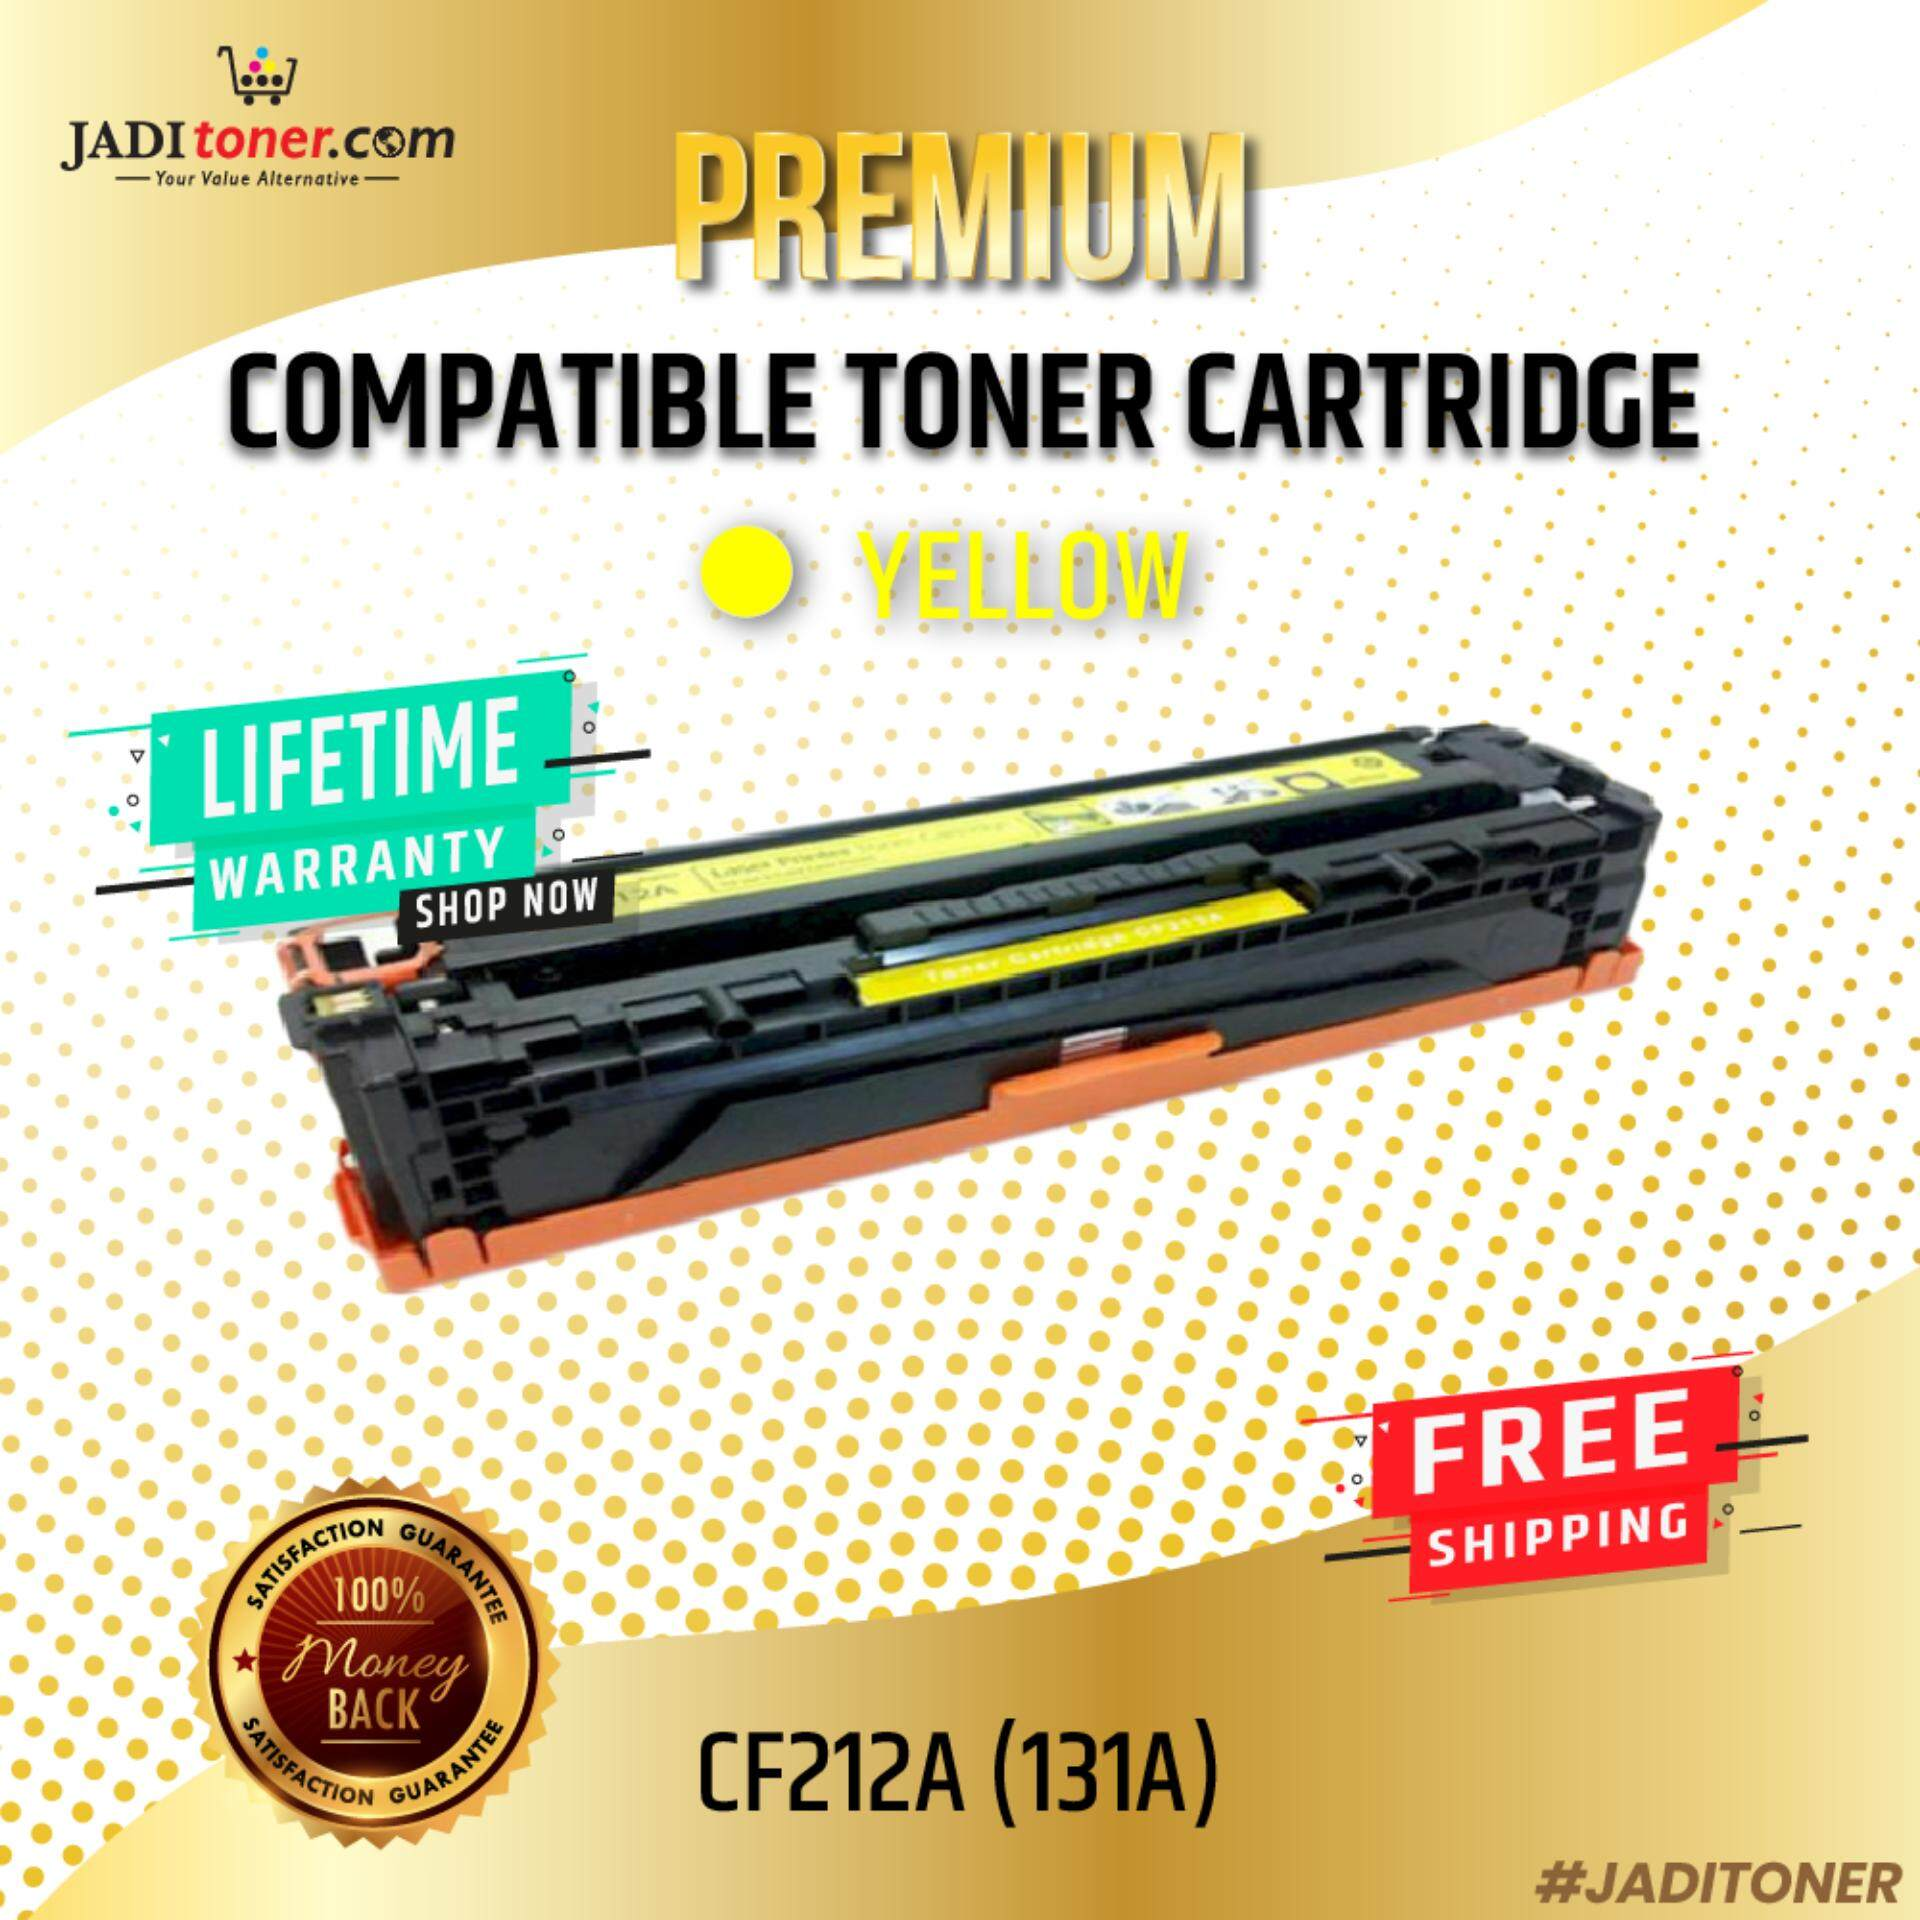 Compatible CF212A 131A Yellow Laser Toner Cartridge For HP Color LaserJet Pro 200 M251nw / HP Color LaserJet Pro 200 M276n / M251 / M276 / HP CF212 212A